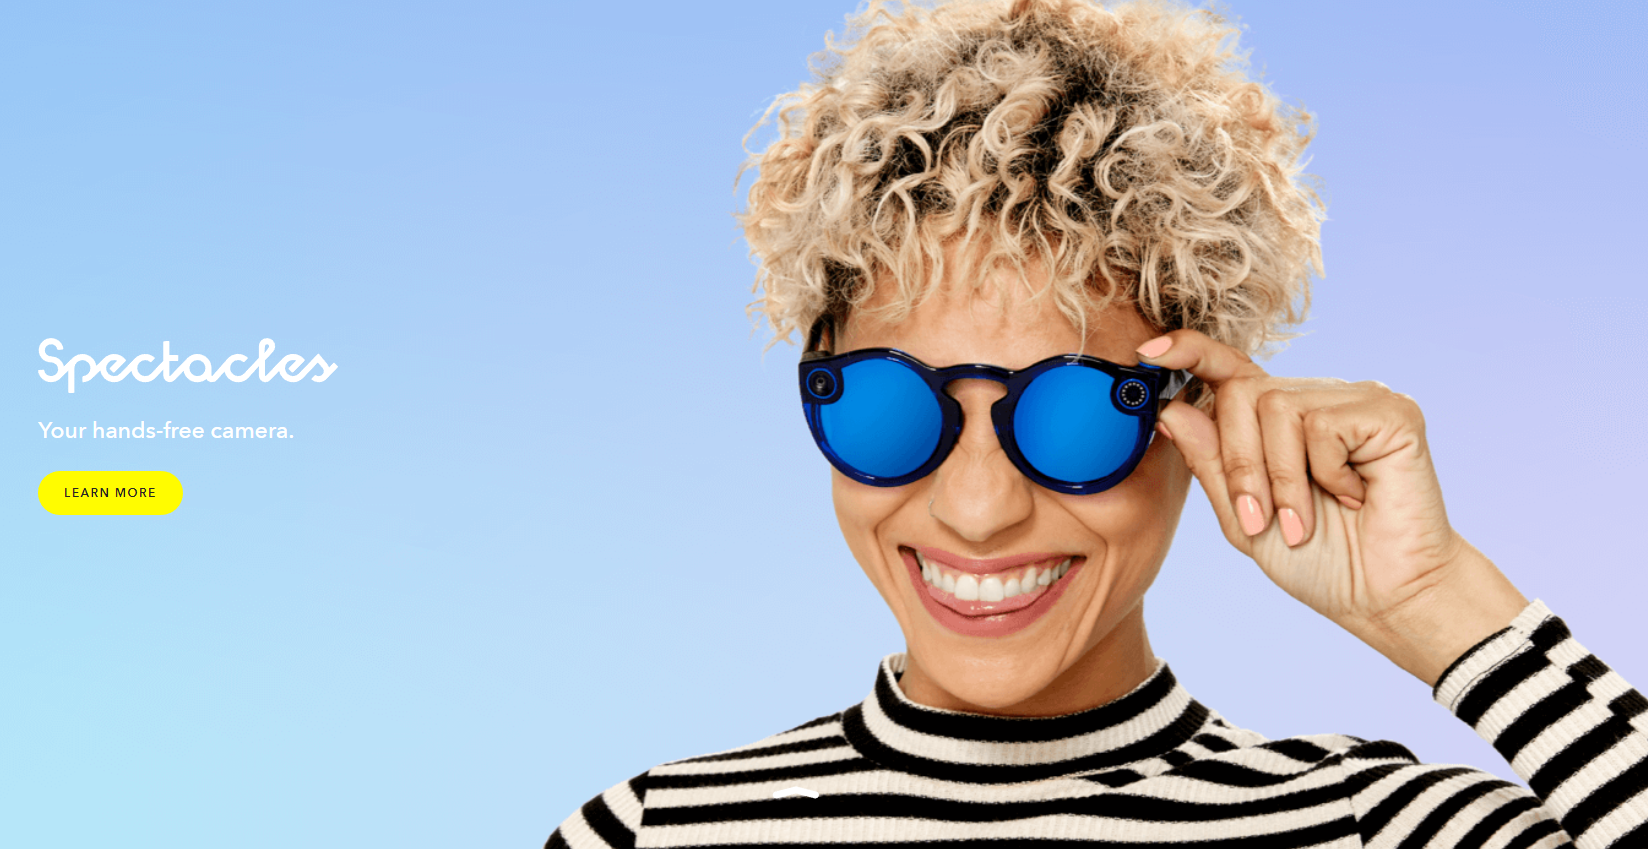 snapchat_spectacles_1527270885517.png